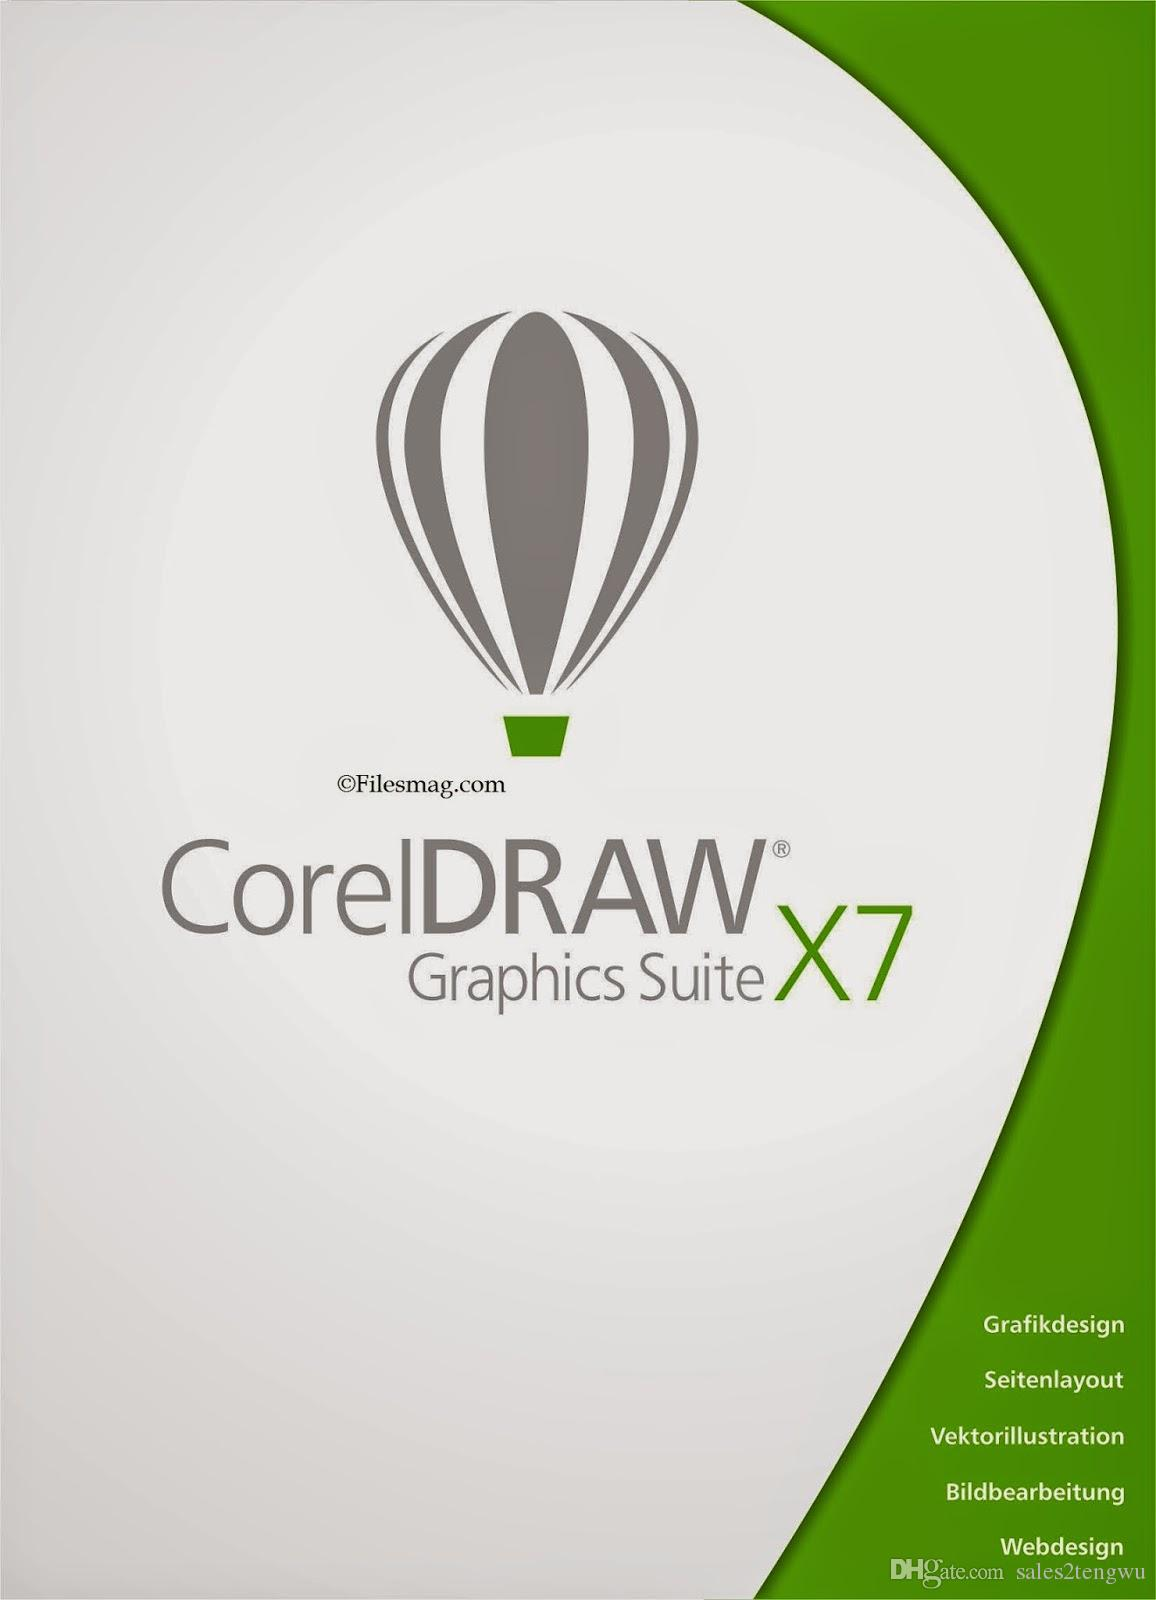 Corel draw version - 2017 Coreldraw Graphics Suite X9 X8 X7 2017 Latest Version Full English For Windows Drawing Software Via Email From Sales2tengwu 4 4 Dhgate Com